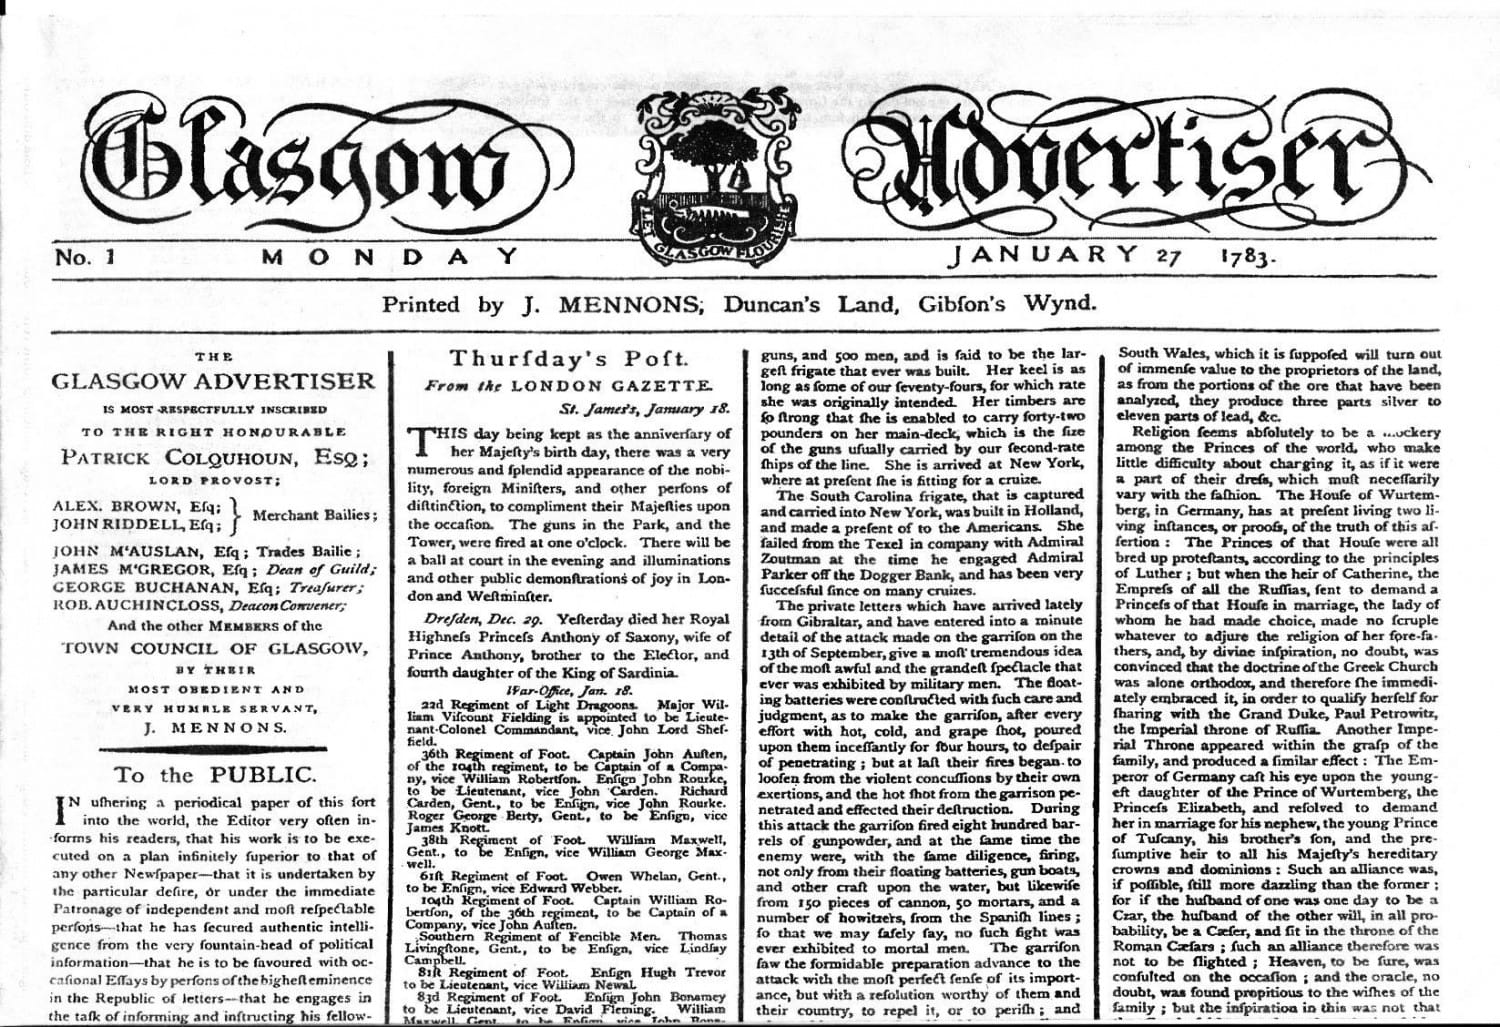 The first edition of what would become The Glasgow Herald